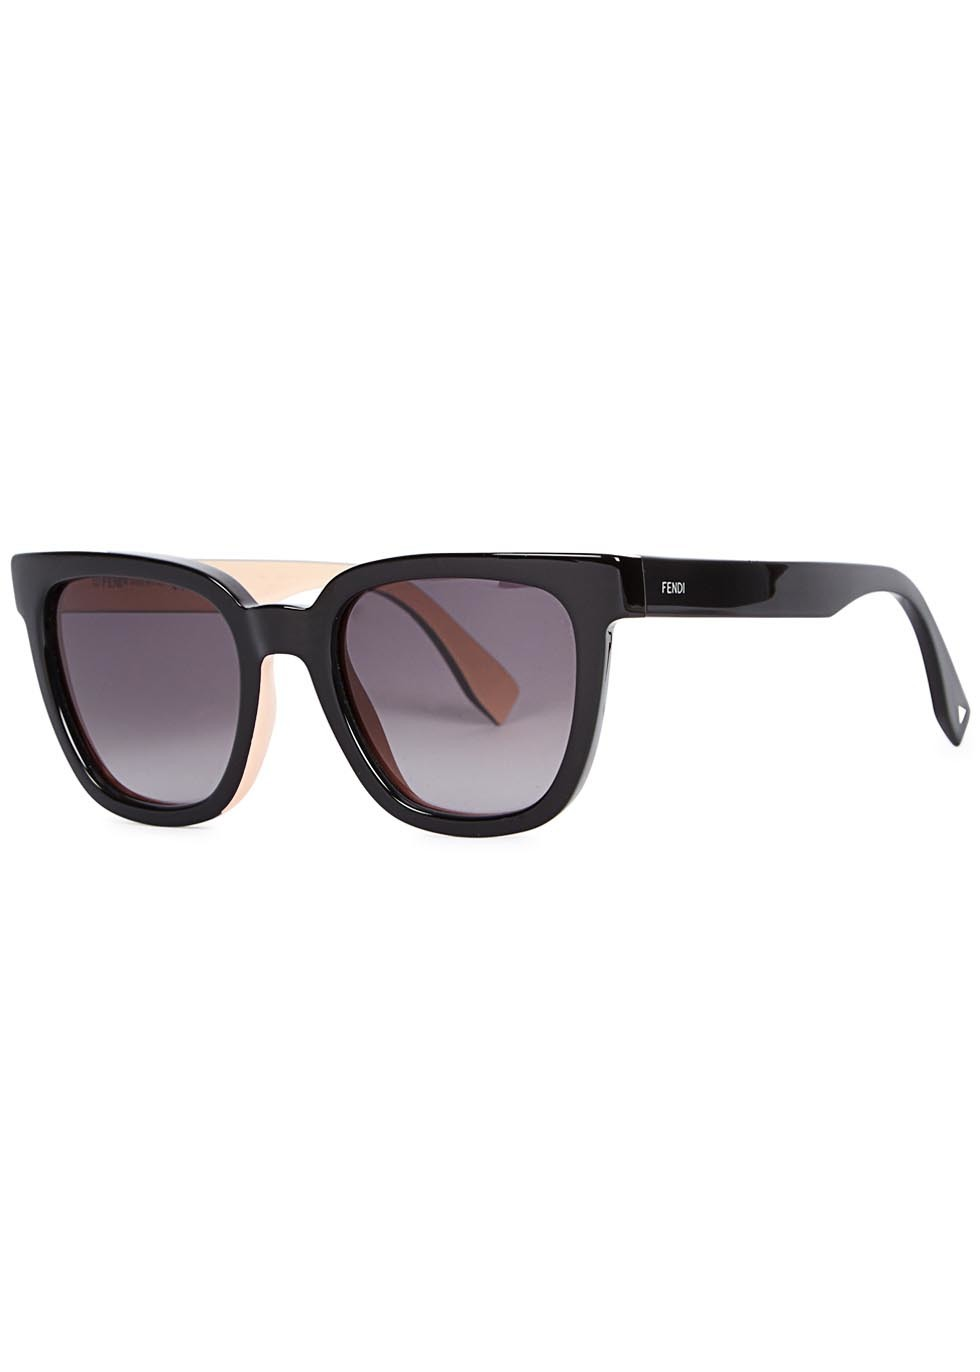 Black Wayfarer Style Sunglasses - predominant colour: black; occasions: casual, holiday; style: d frame; size: standard; material: plastic/rubber; pattern: plain; finish: plain; season: a/w 2015; wardrobe: basic